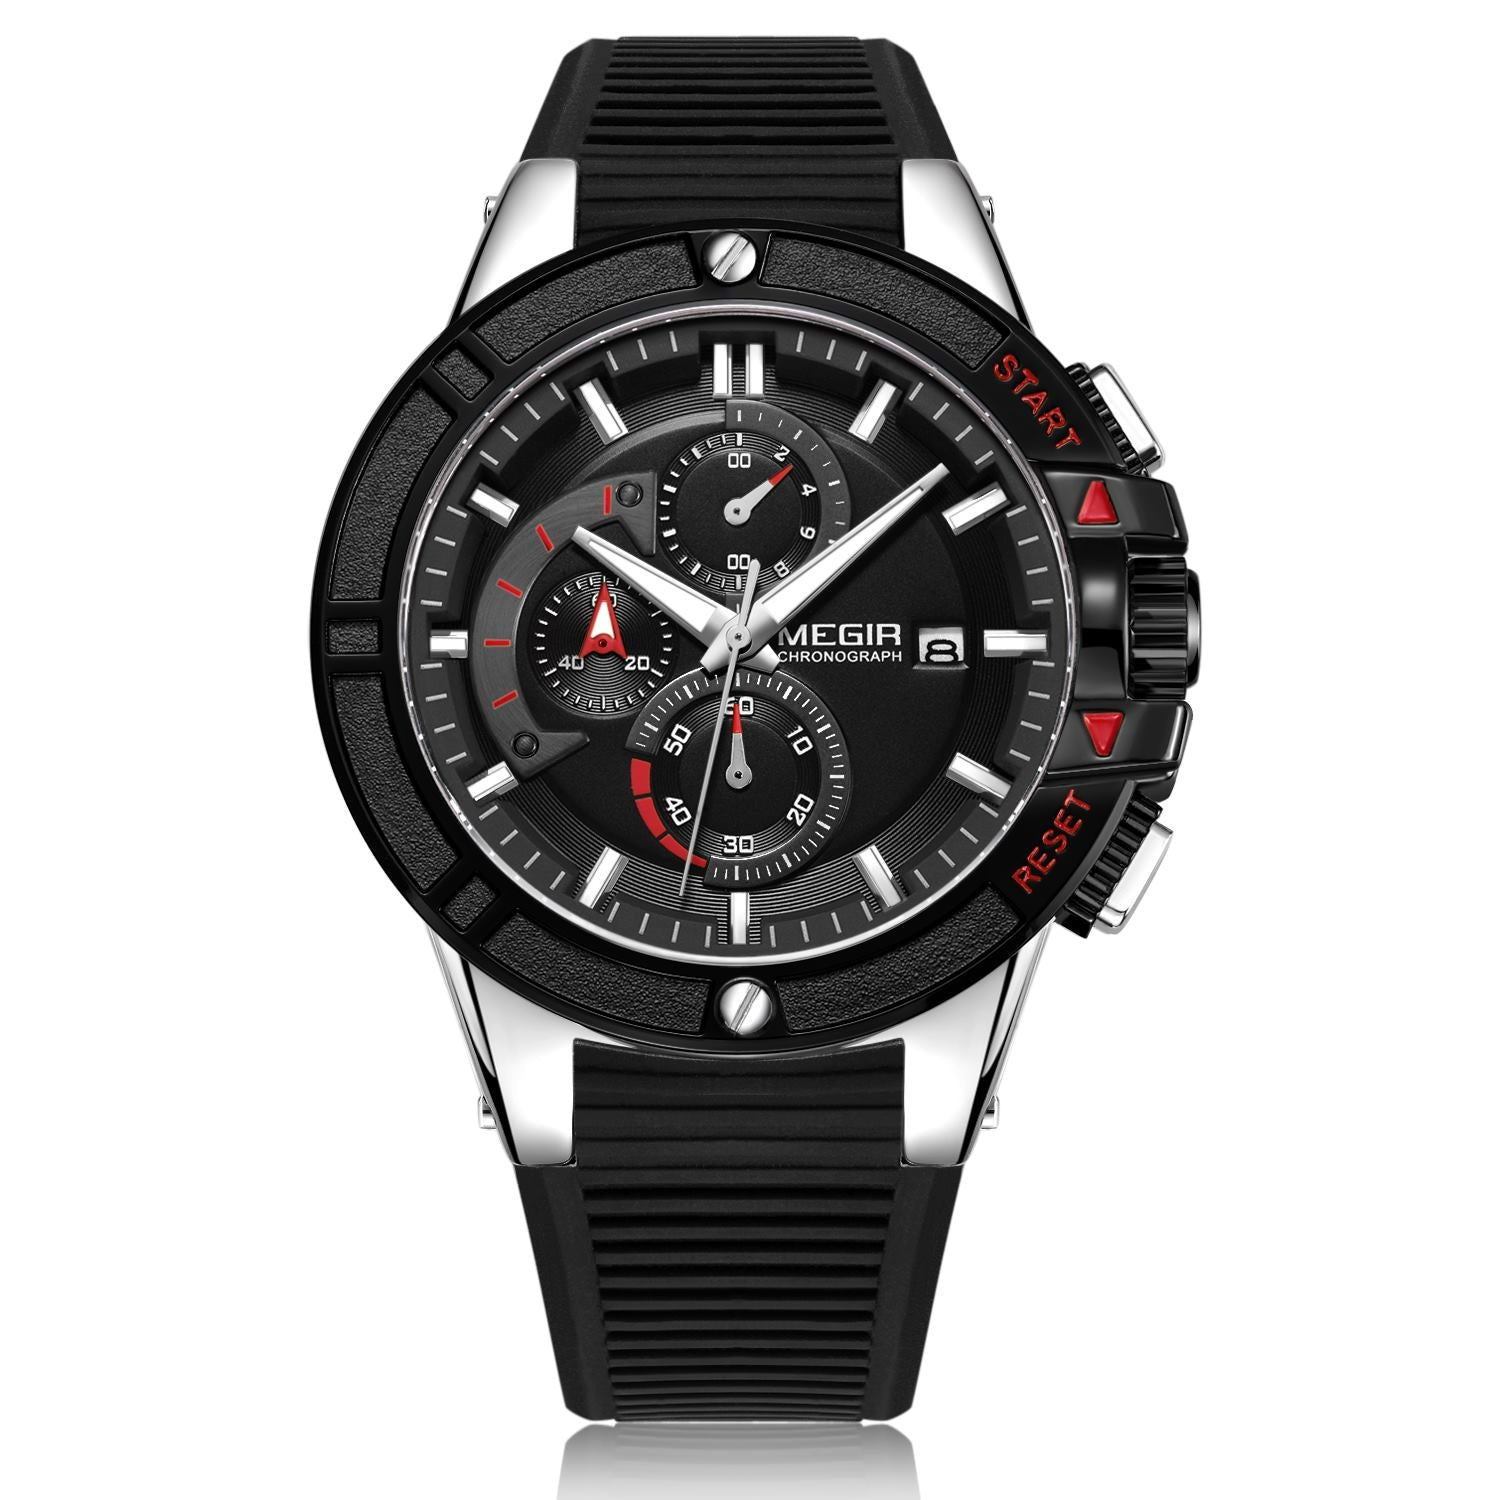 MEGIR Watch for Men, Silicone Watch 2095 - MEGIR